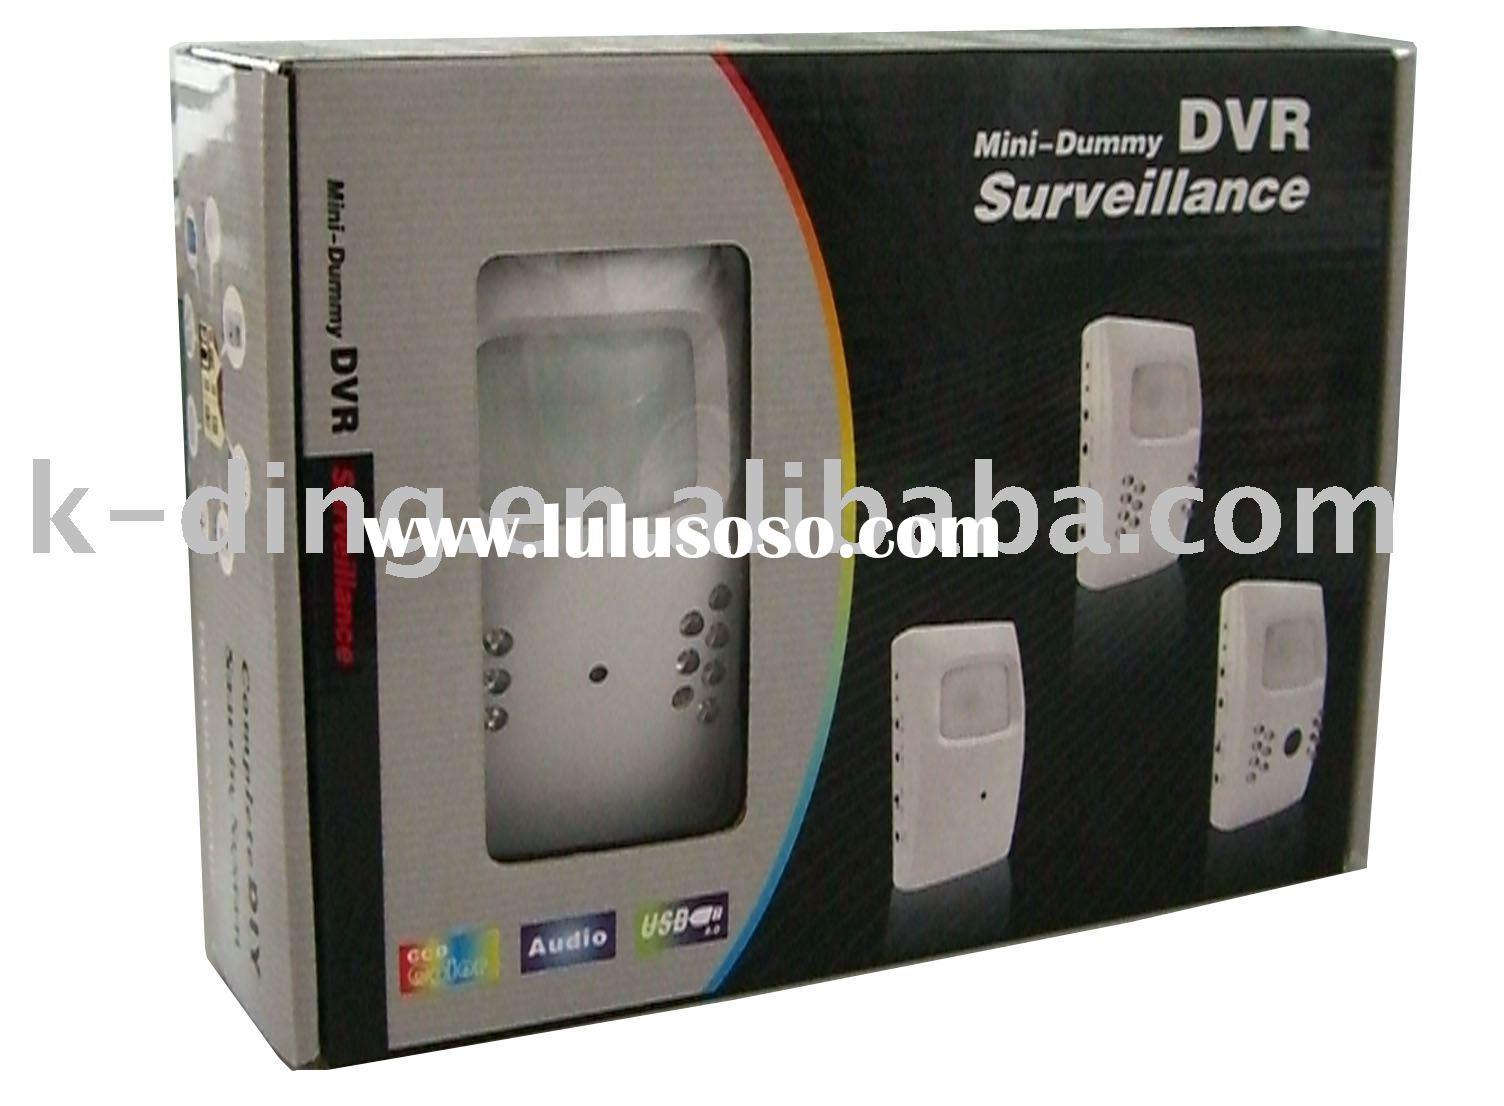 Mini dvr camera for house/store security protect surveillance 30f/s(work with GSM alarm host in wire